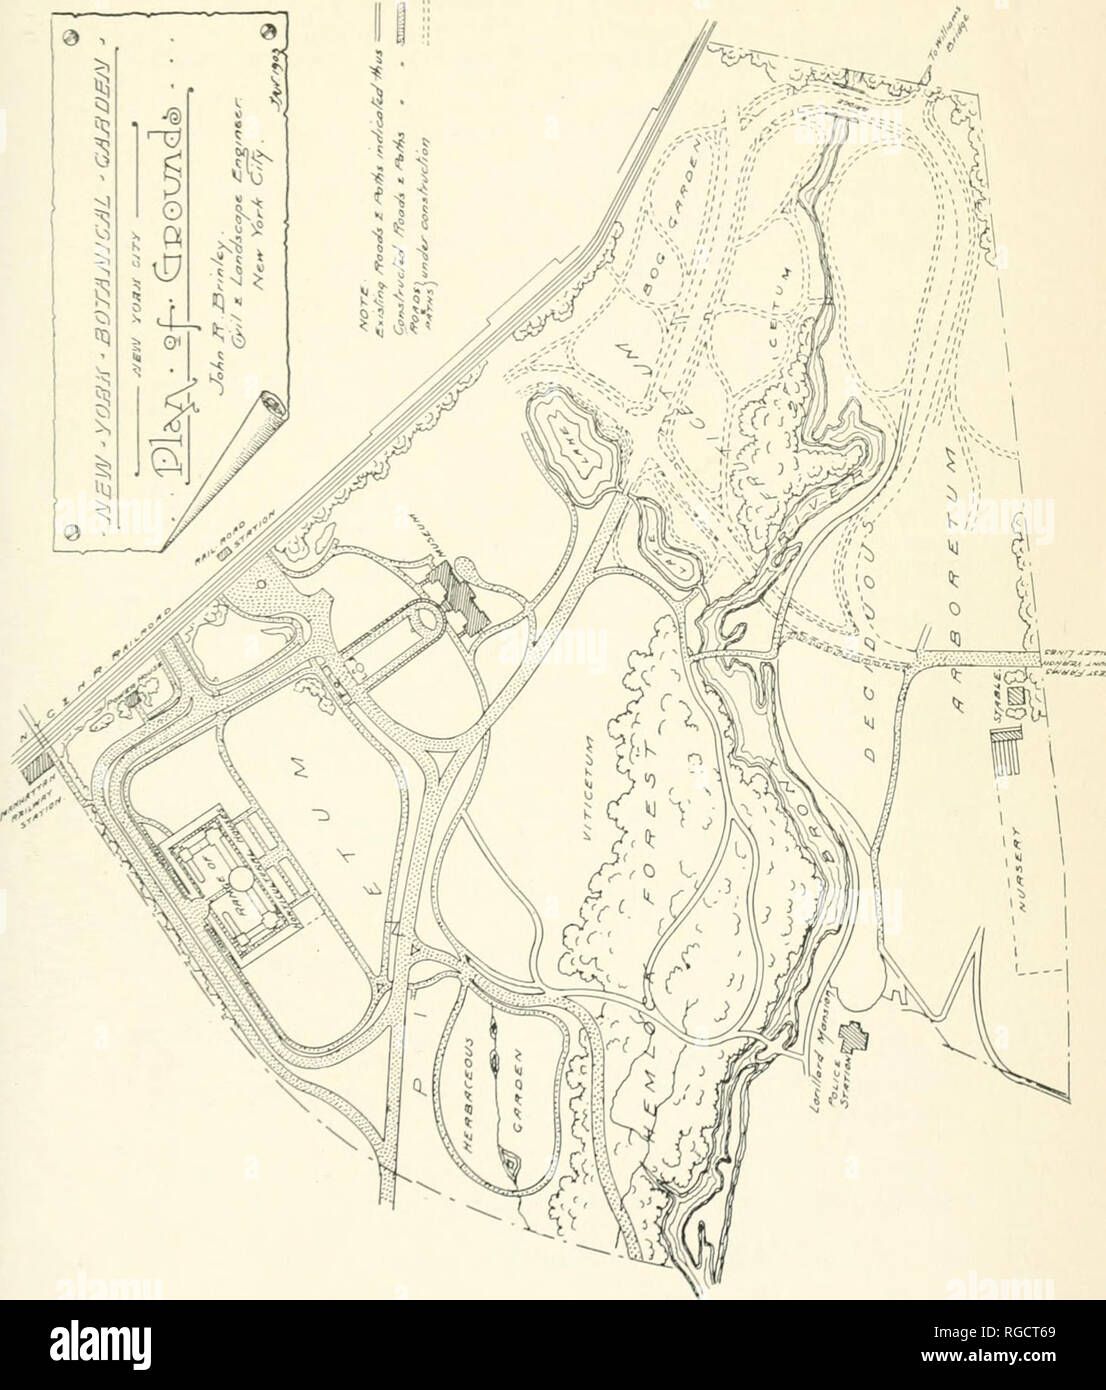 Map Of New York Botanical Garden.Y Map Stock Photos Y Map Stock Images Page 5 Alamy